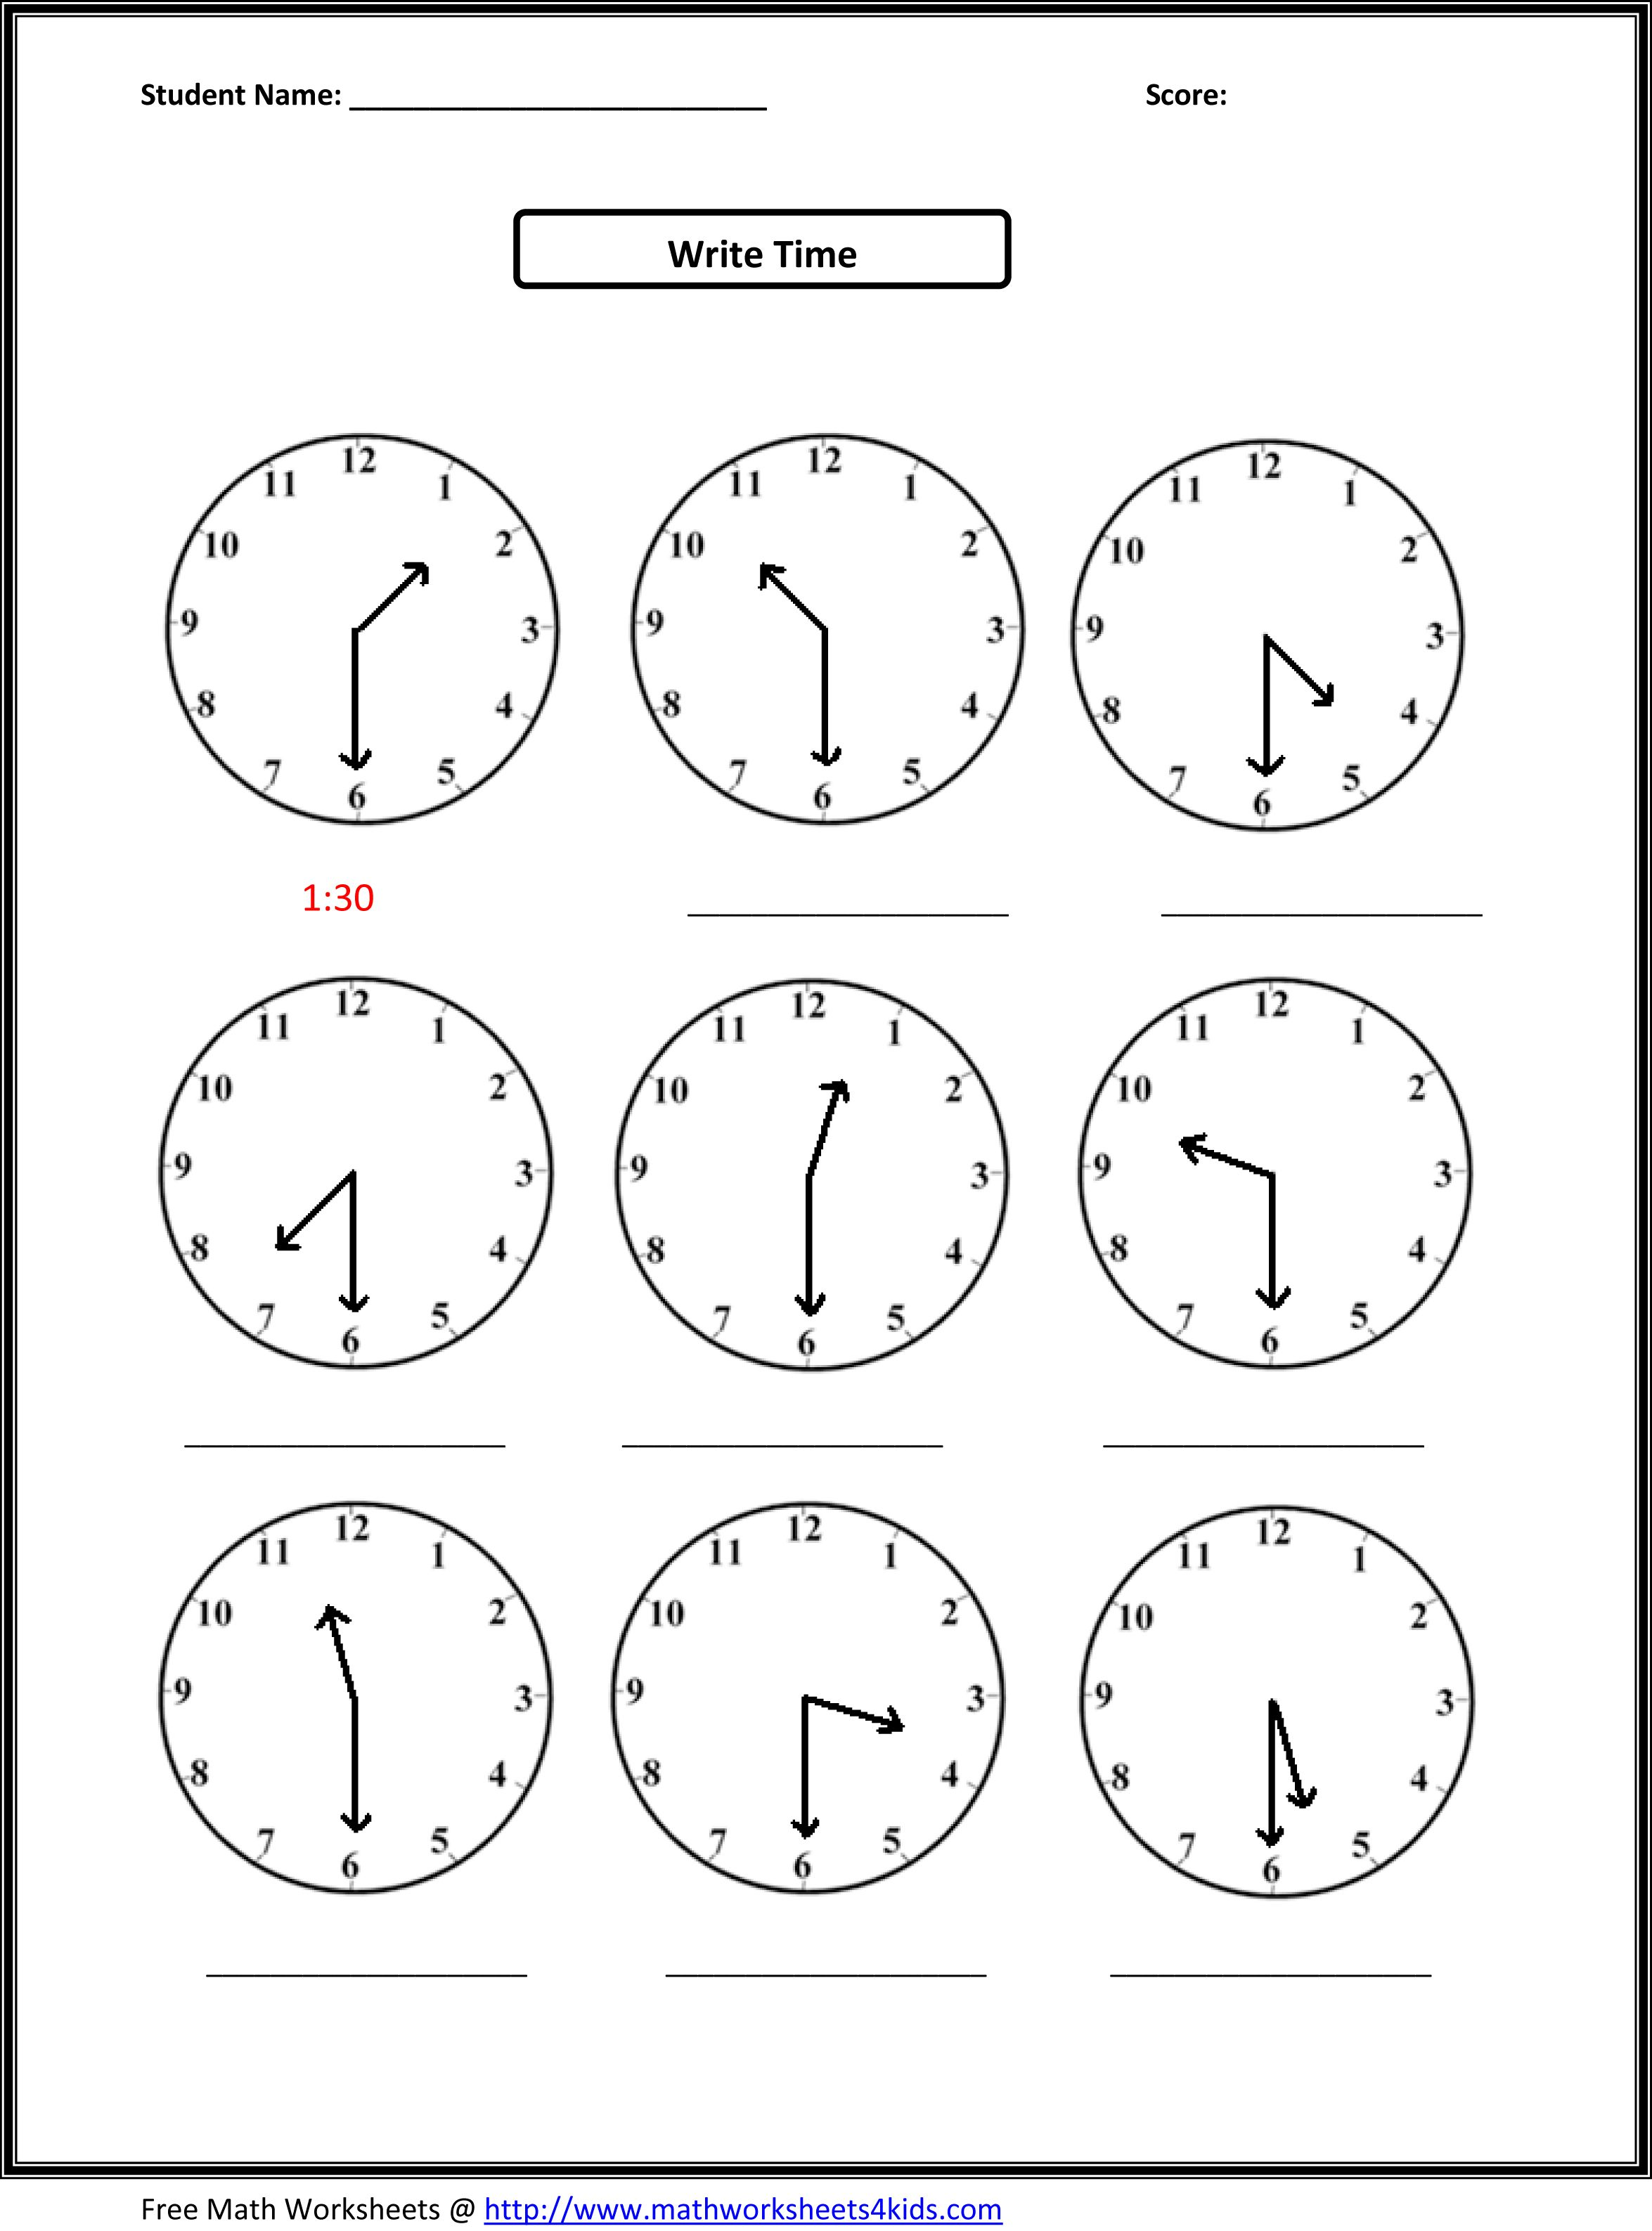 Weirdmailus  Inspiring Worksheet On Time For Grade   Reocurent With Outstanding Free Printable Telling Time Worksheets Nd Grade  Reocurent With Beautiful Decimals To Percents Worksheet Also Function Review Worksheet In Addition Expanded Form Worksheets Rd Grade And Glencoe Biology Worksheets As Well As Greater Less Than Worksheets Additionally Classroom Objects In Spanish Worksheet From Reocurentcom With Weirdmailus  Outstanding Worksheet On Time For Grade   Reocurent With Beautiful Free Printable Telling Time Worksheets Nd Grade  Reocurent And Inspiring Decimals To Percents Worksheet Also Function Review Worksheet In Addition Expanded Form Worksheets Rd Grade From Reocurentcom